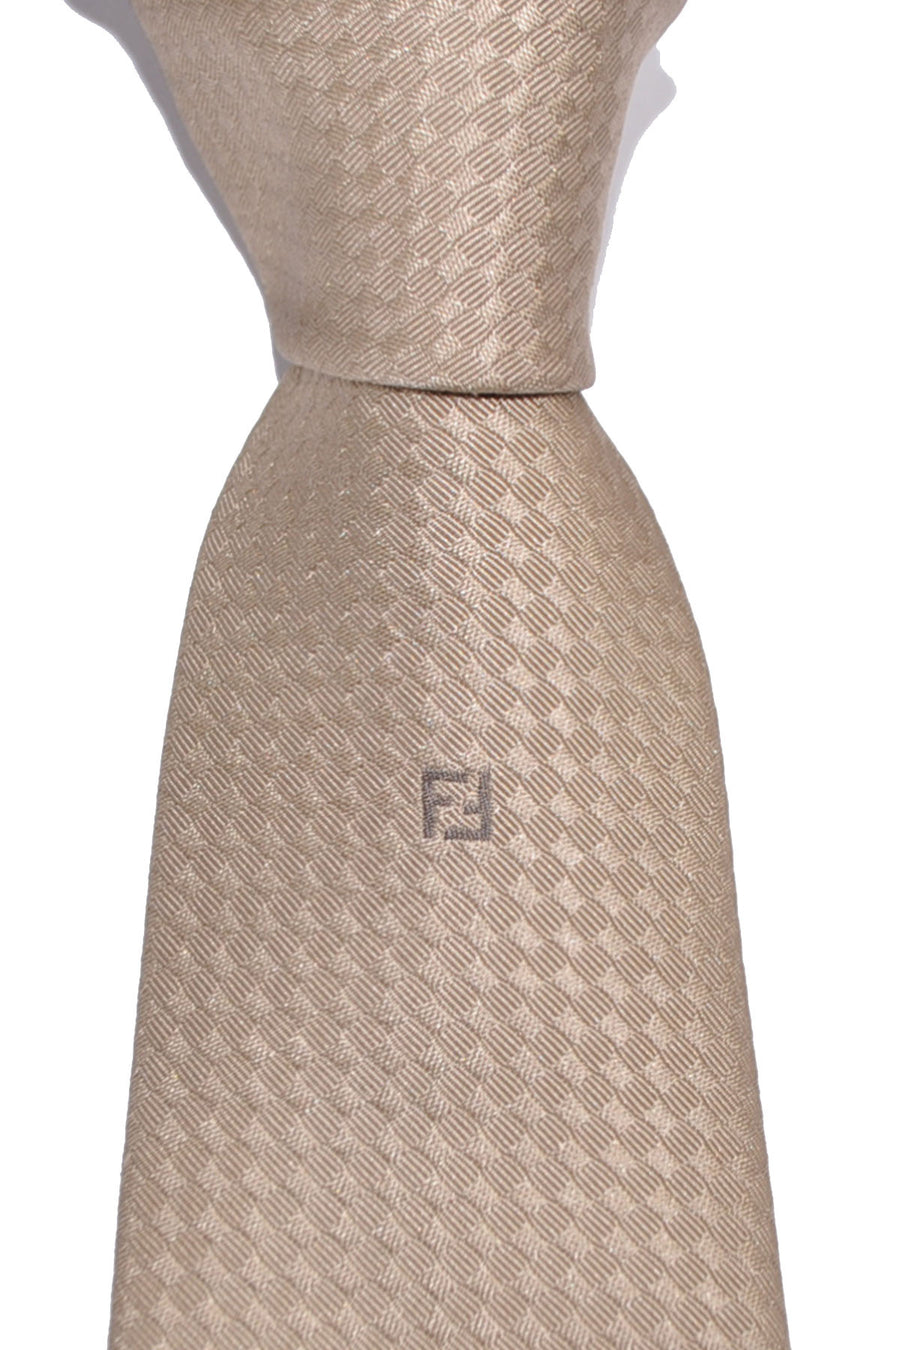 Fendi Silk Tie Taupe Design - FINAL SALE